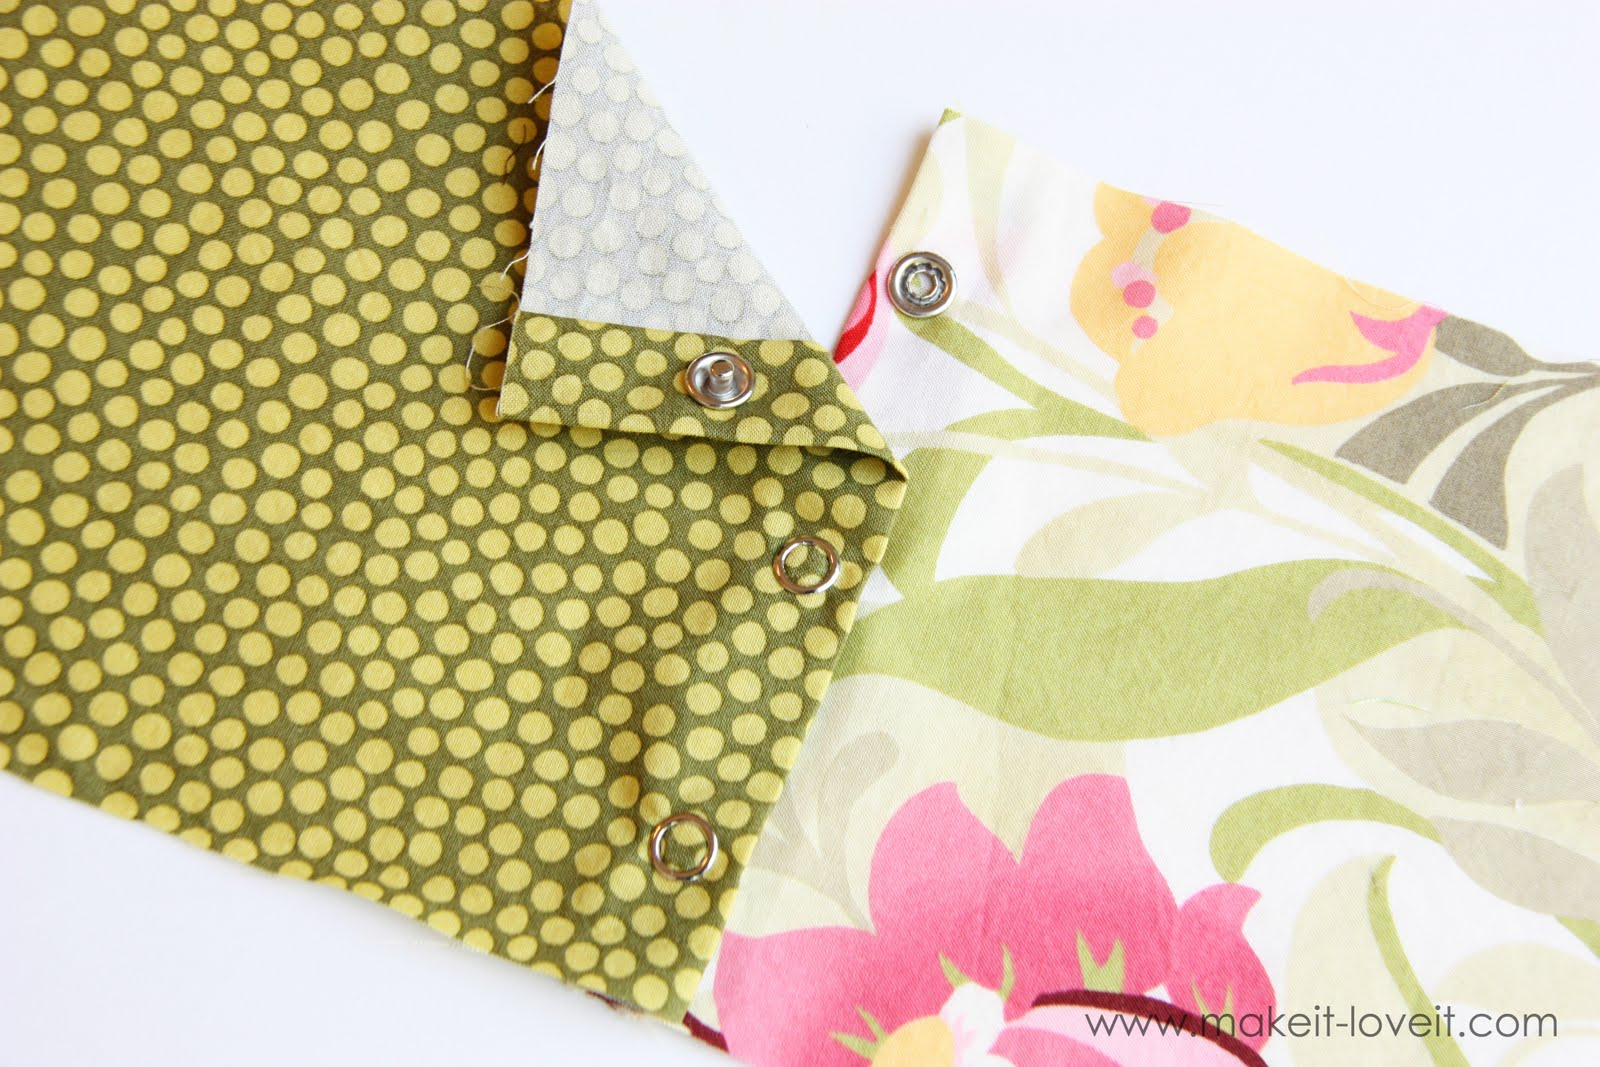 Sewing Tips: Attaching Snaps – Make It and Love It